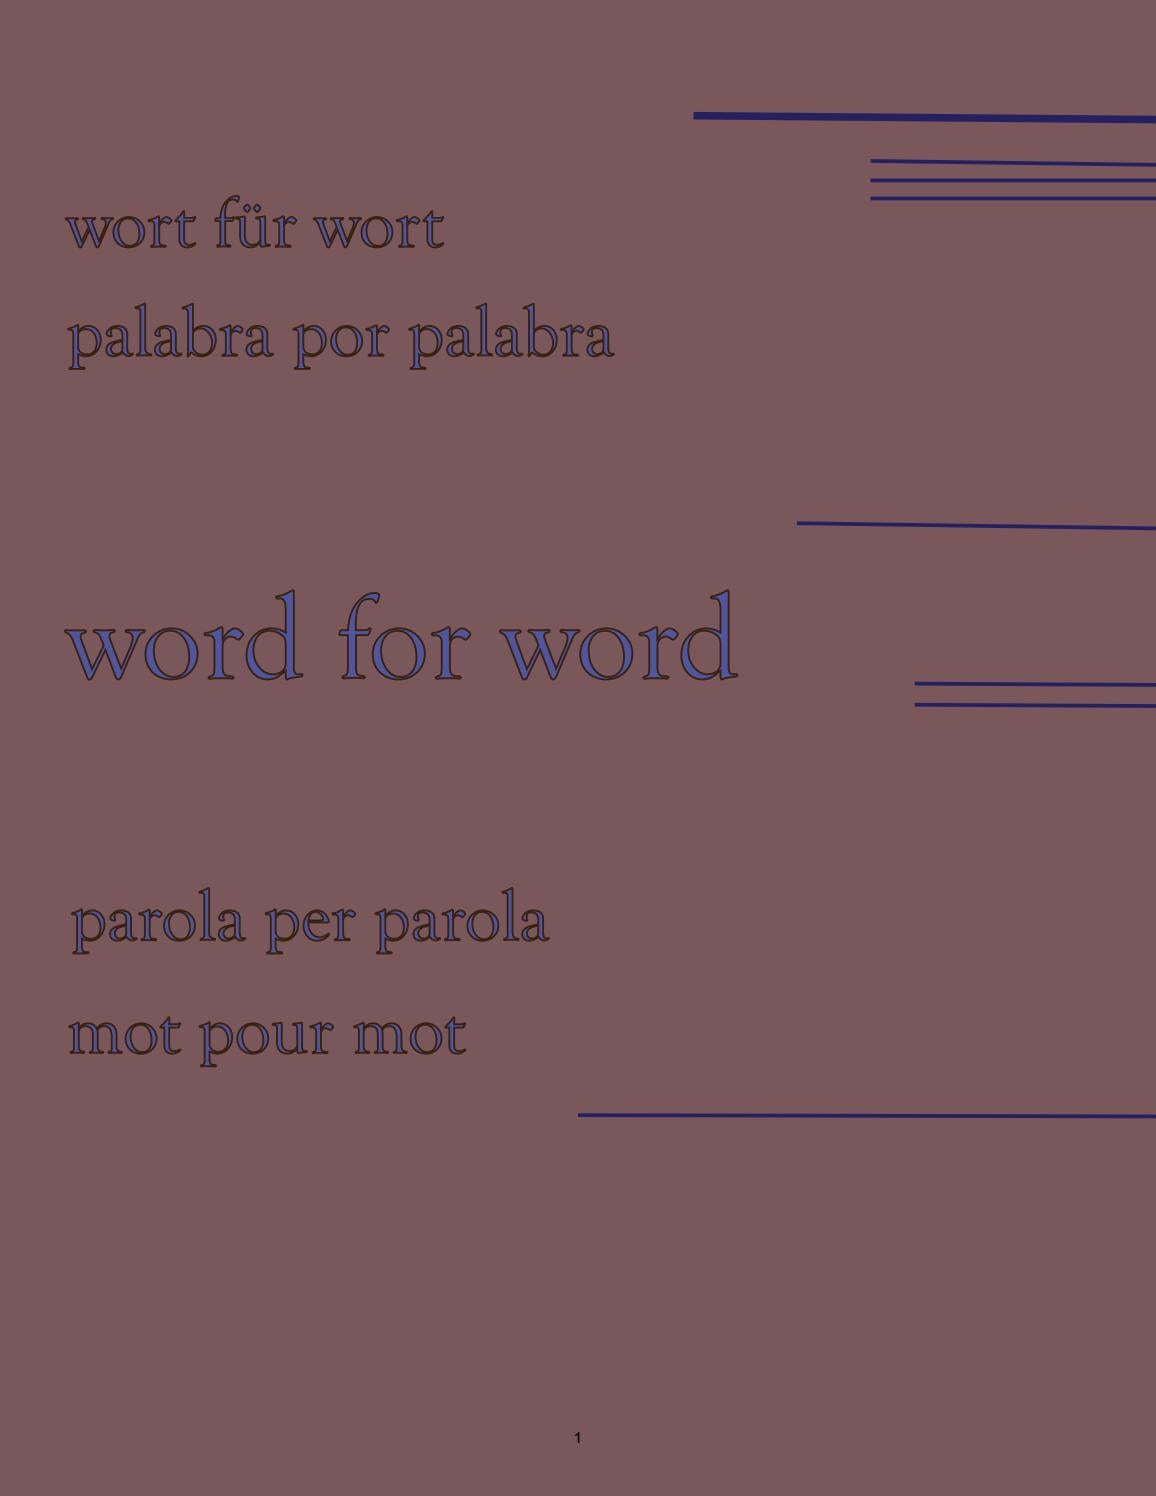 Ir Camino De Traduzione 2016 Word For Word By Cusoa Issuu